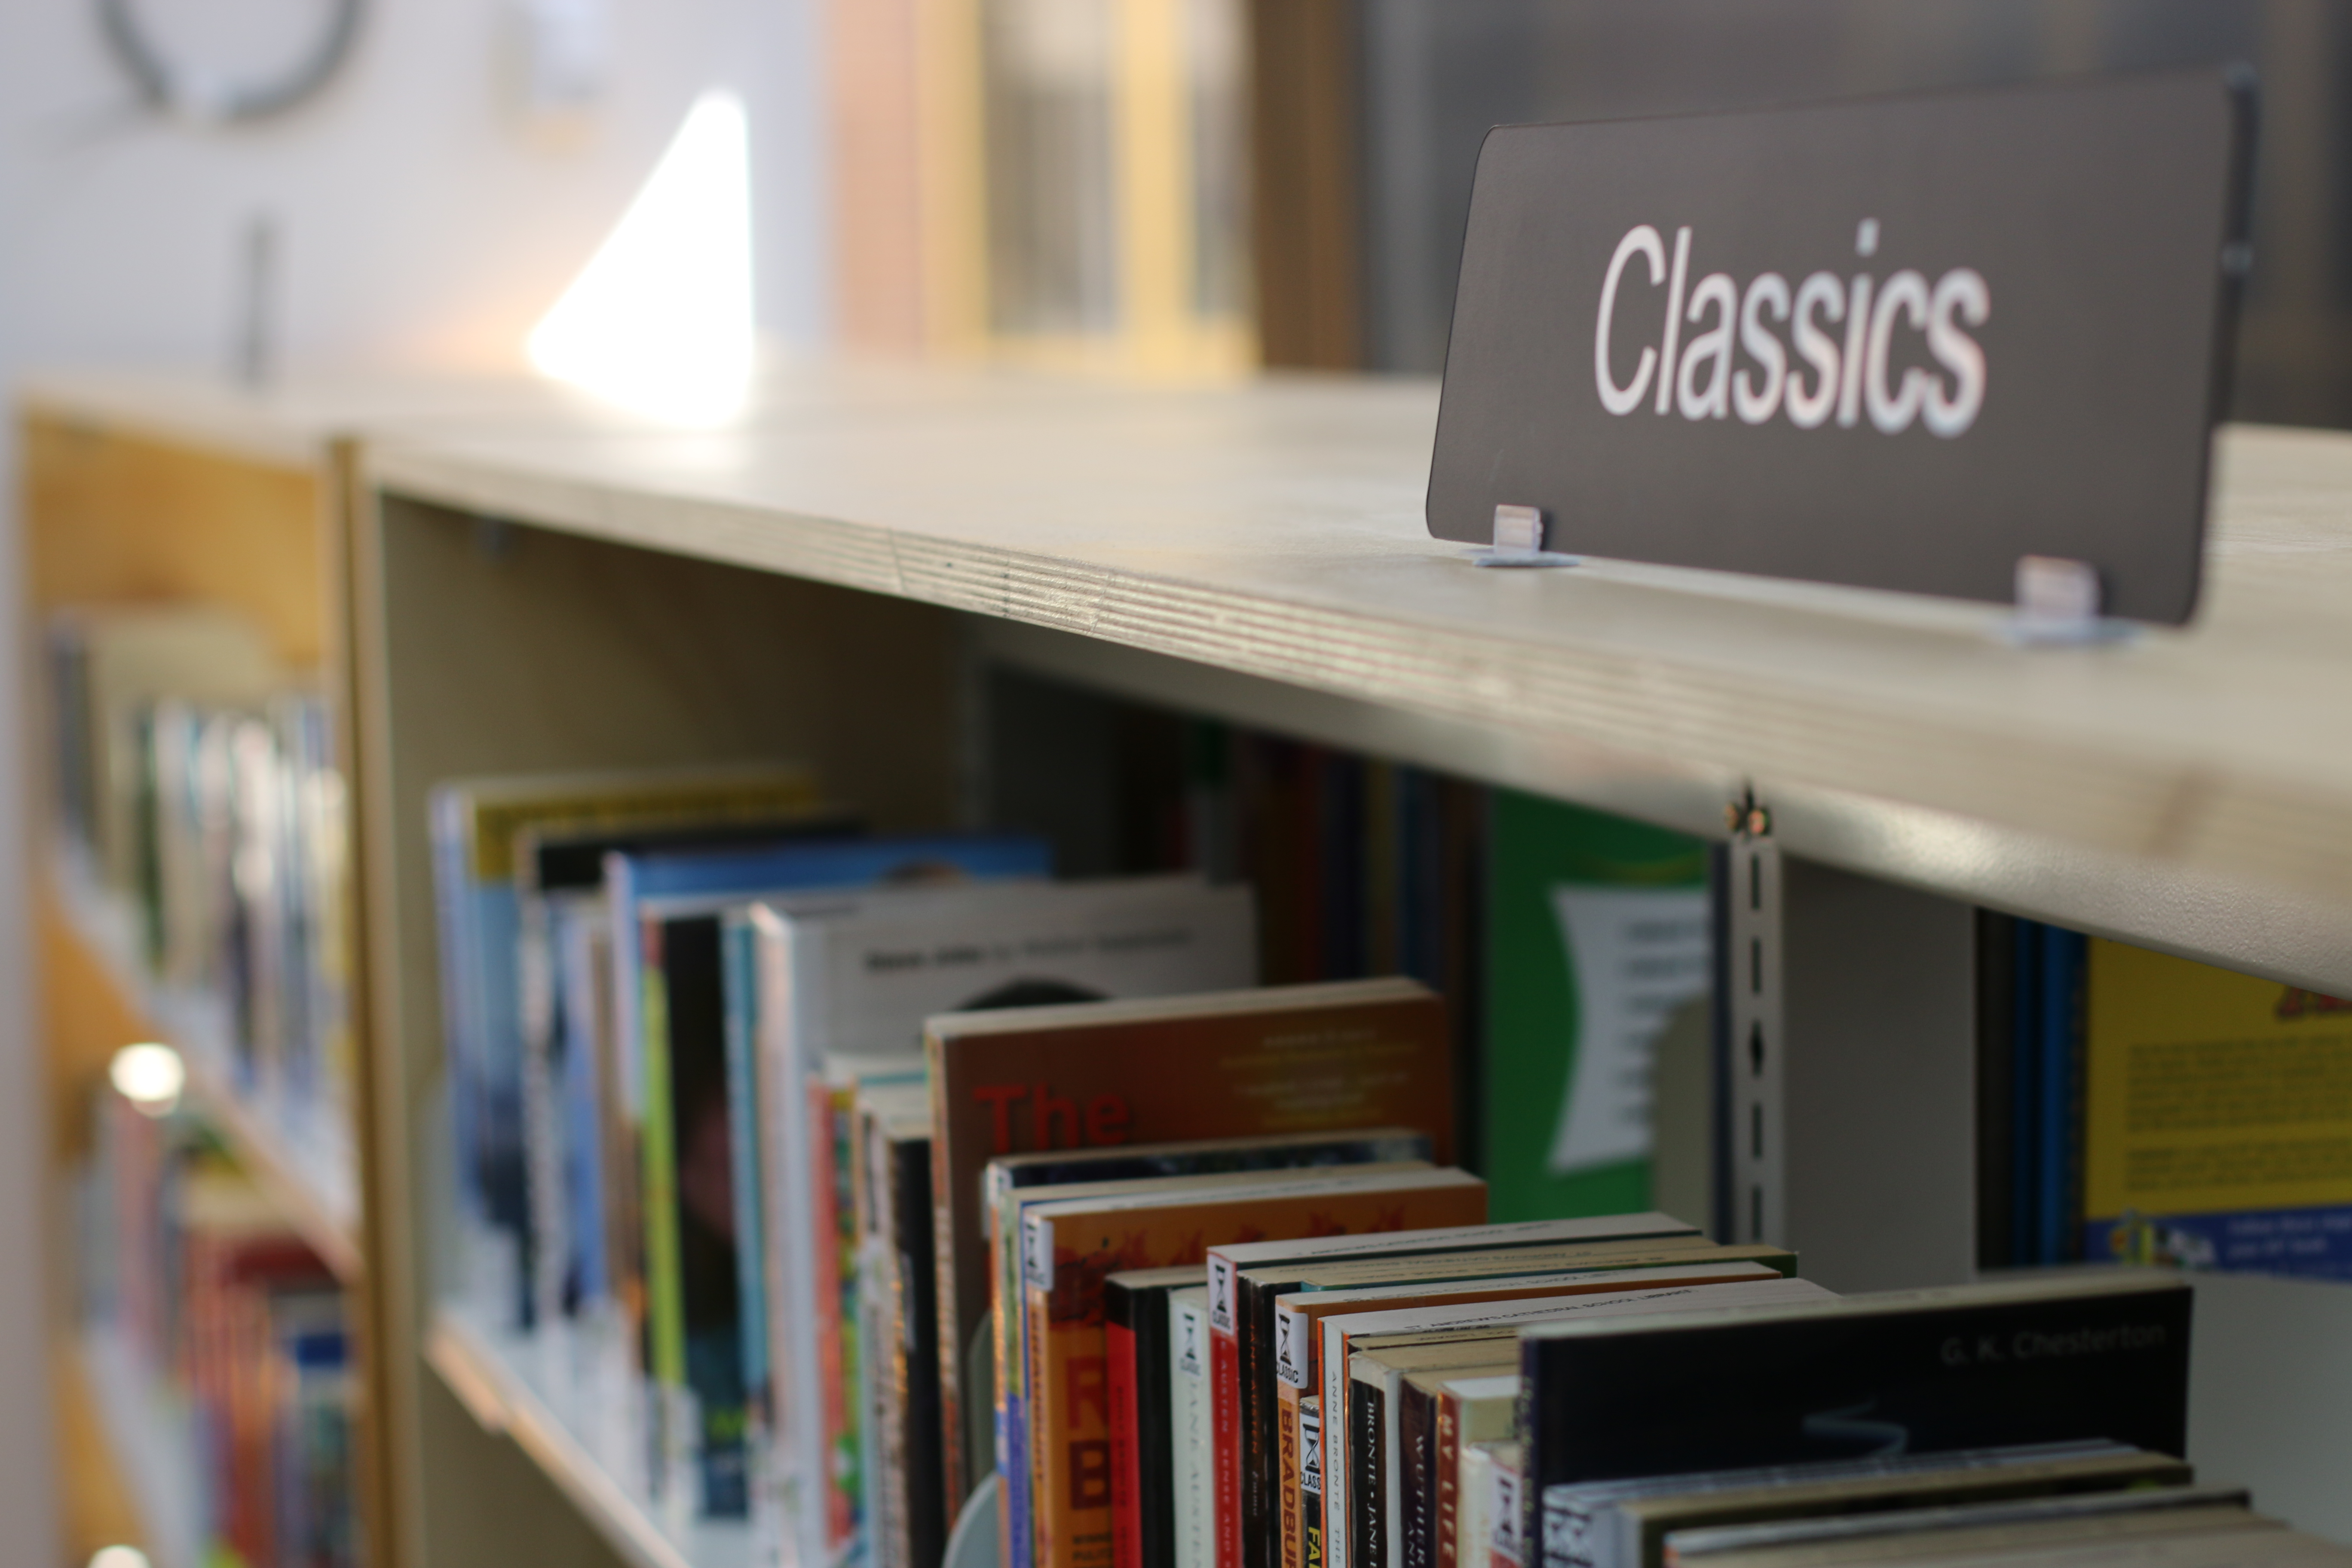 Books are arranged by genre at SACS Library